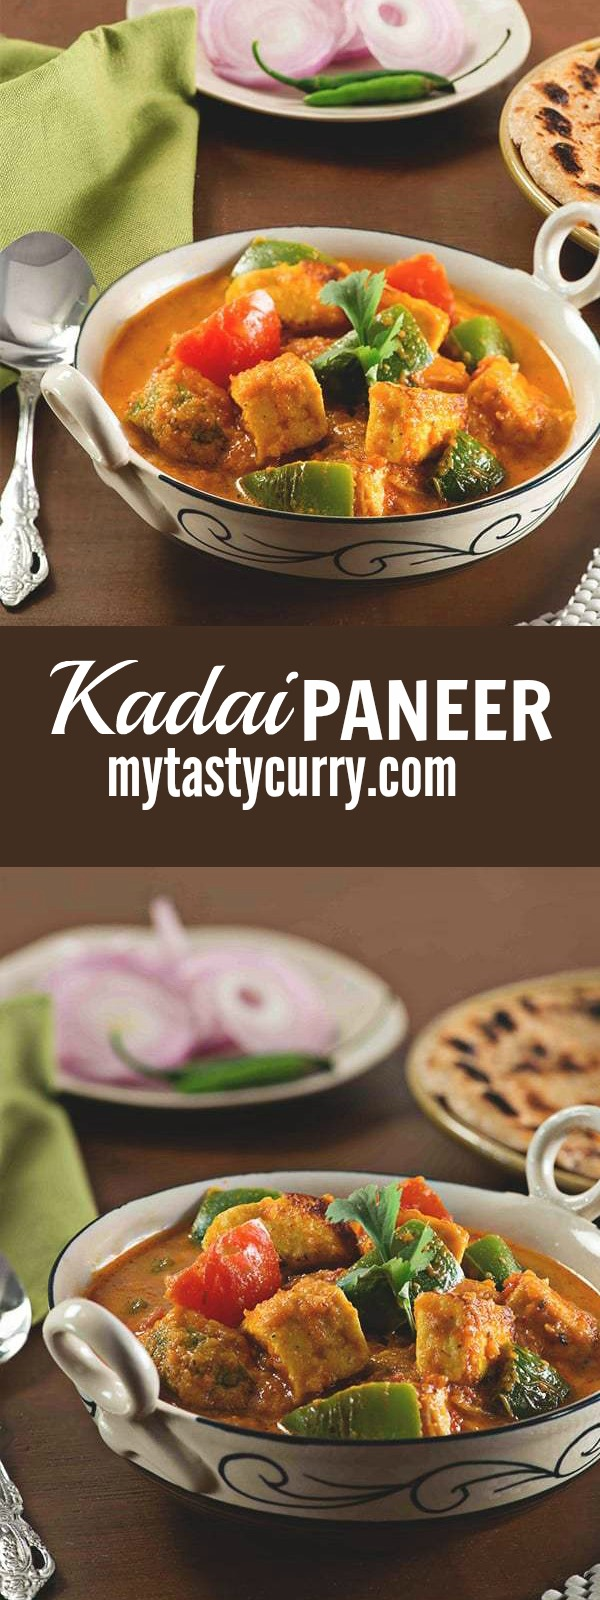 Tasty curry sabzi recipes archives page 10 of 12 my tasty curry punjabi kadai paneer recipe a quick and easy recipe with step by step youtube video forumfinder Gallery